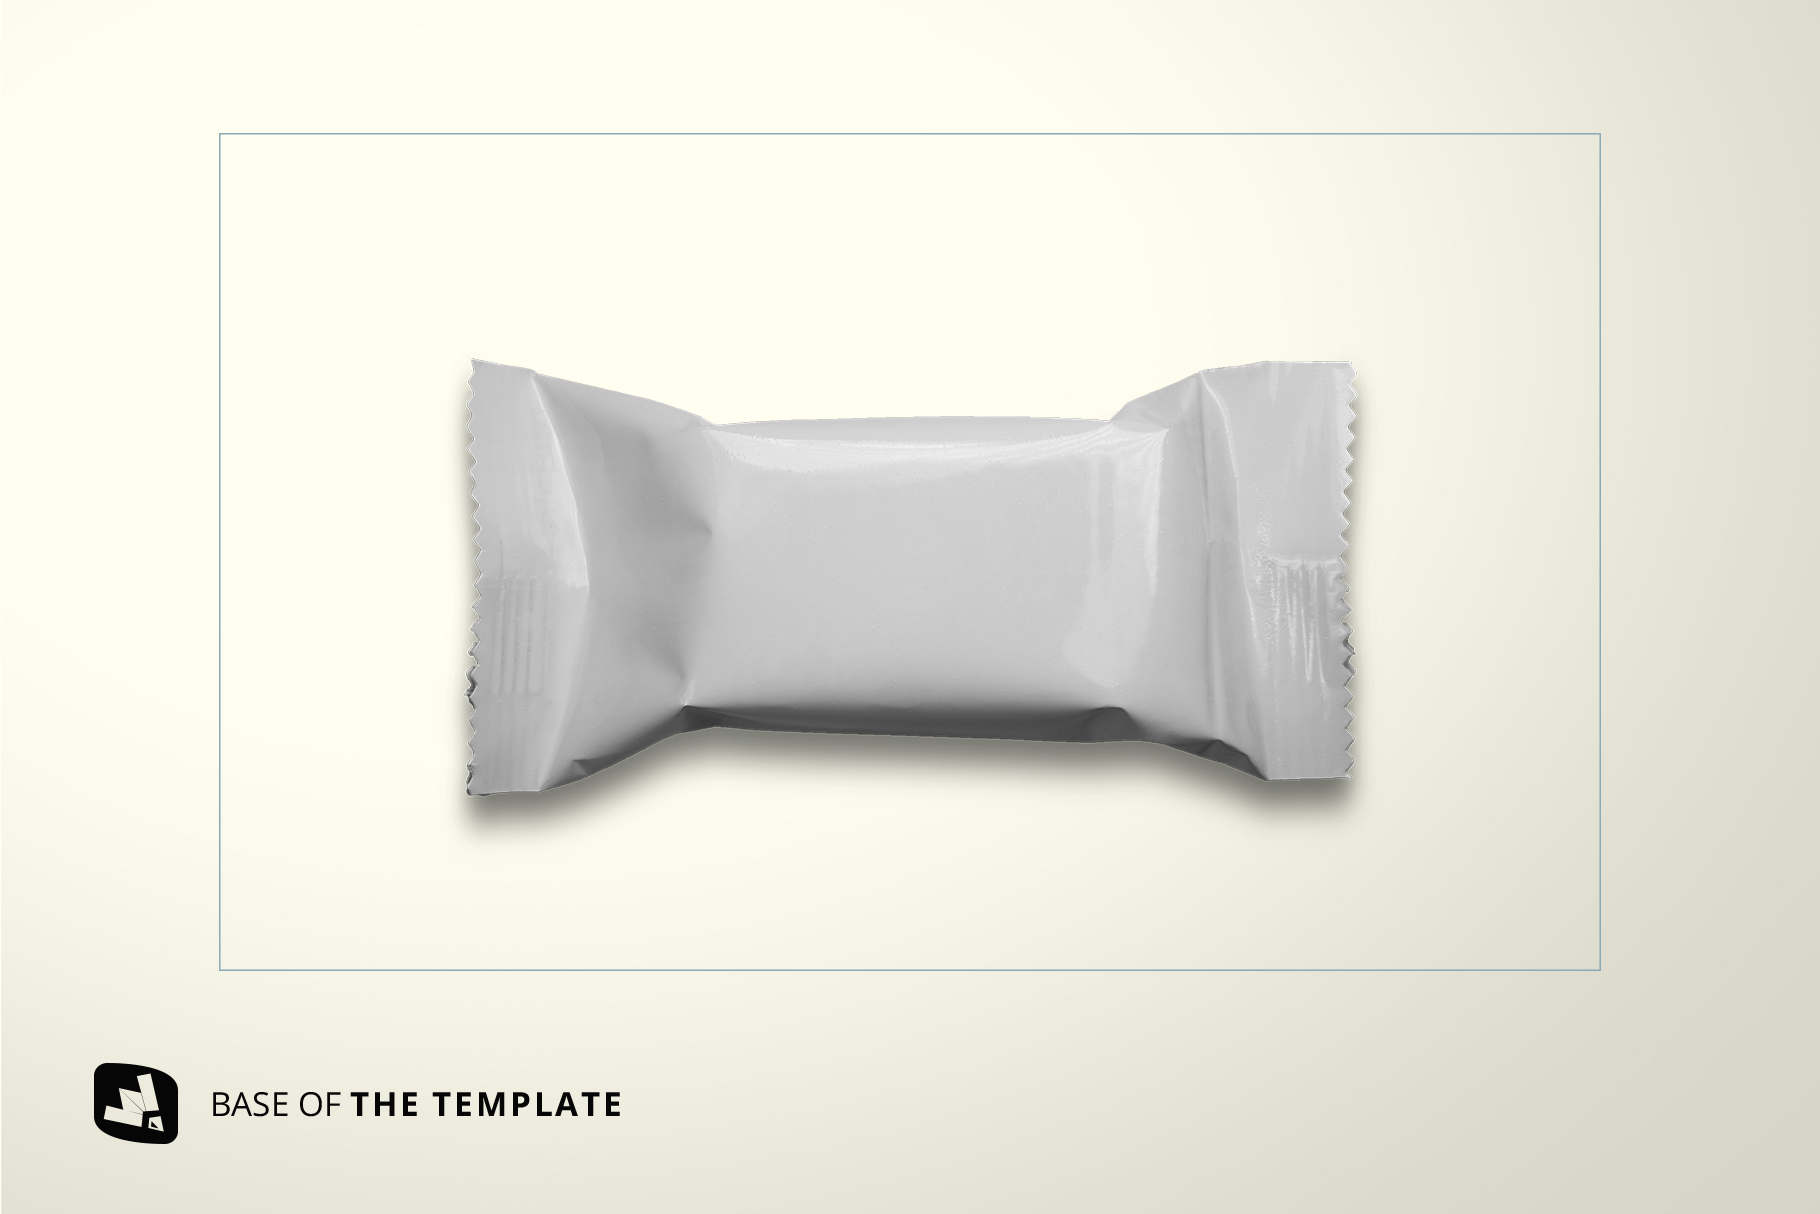 base image of the top view taffy packaging mockup